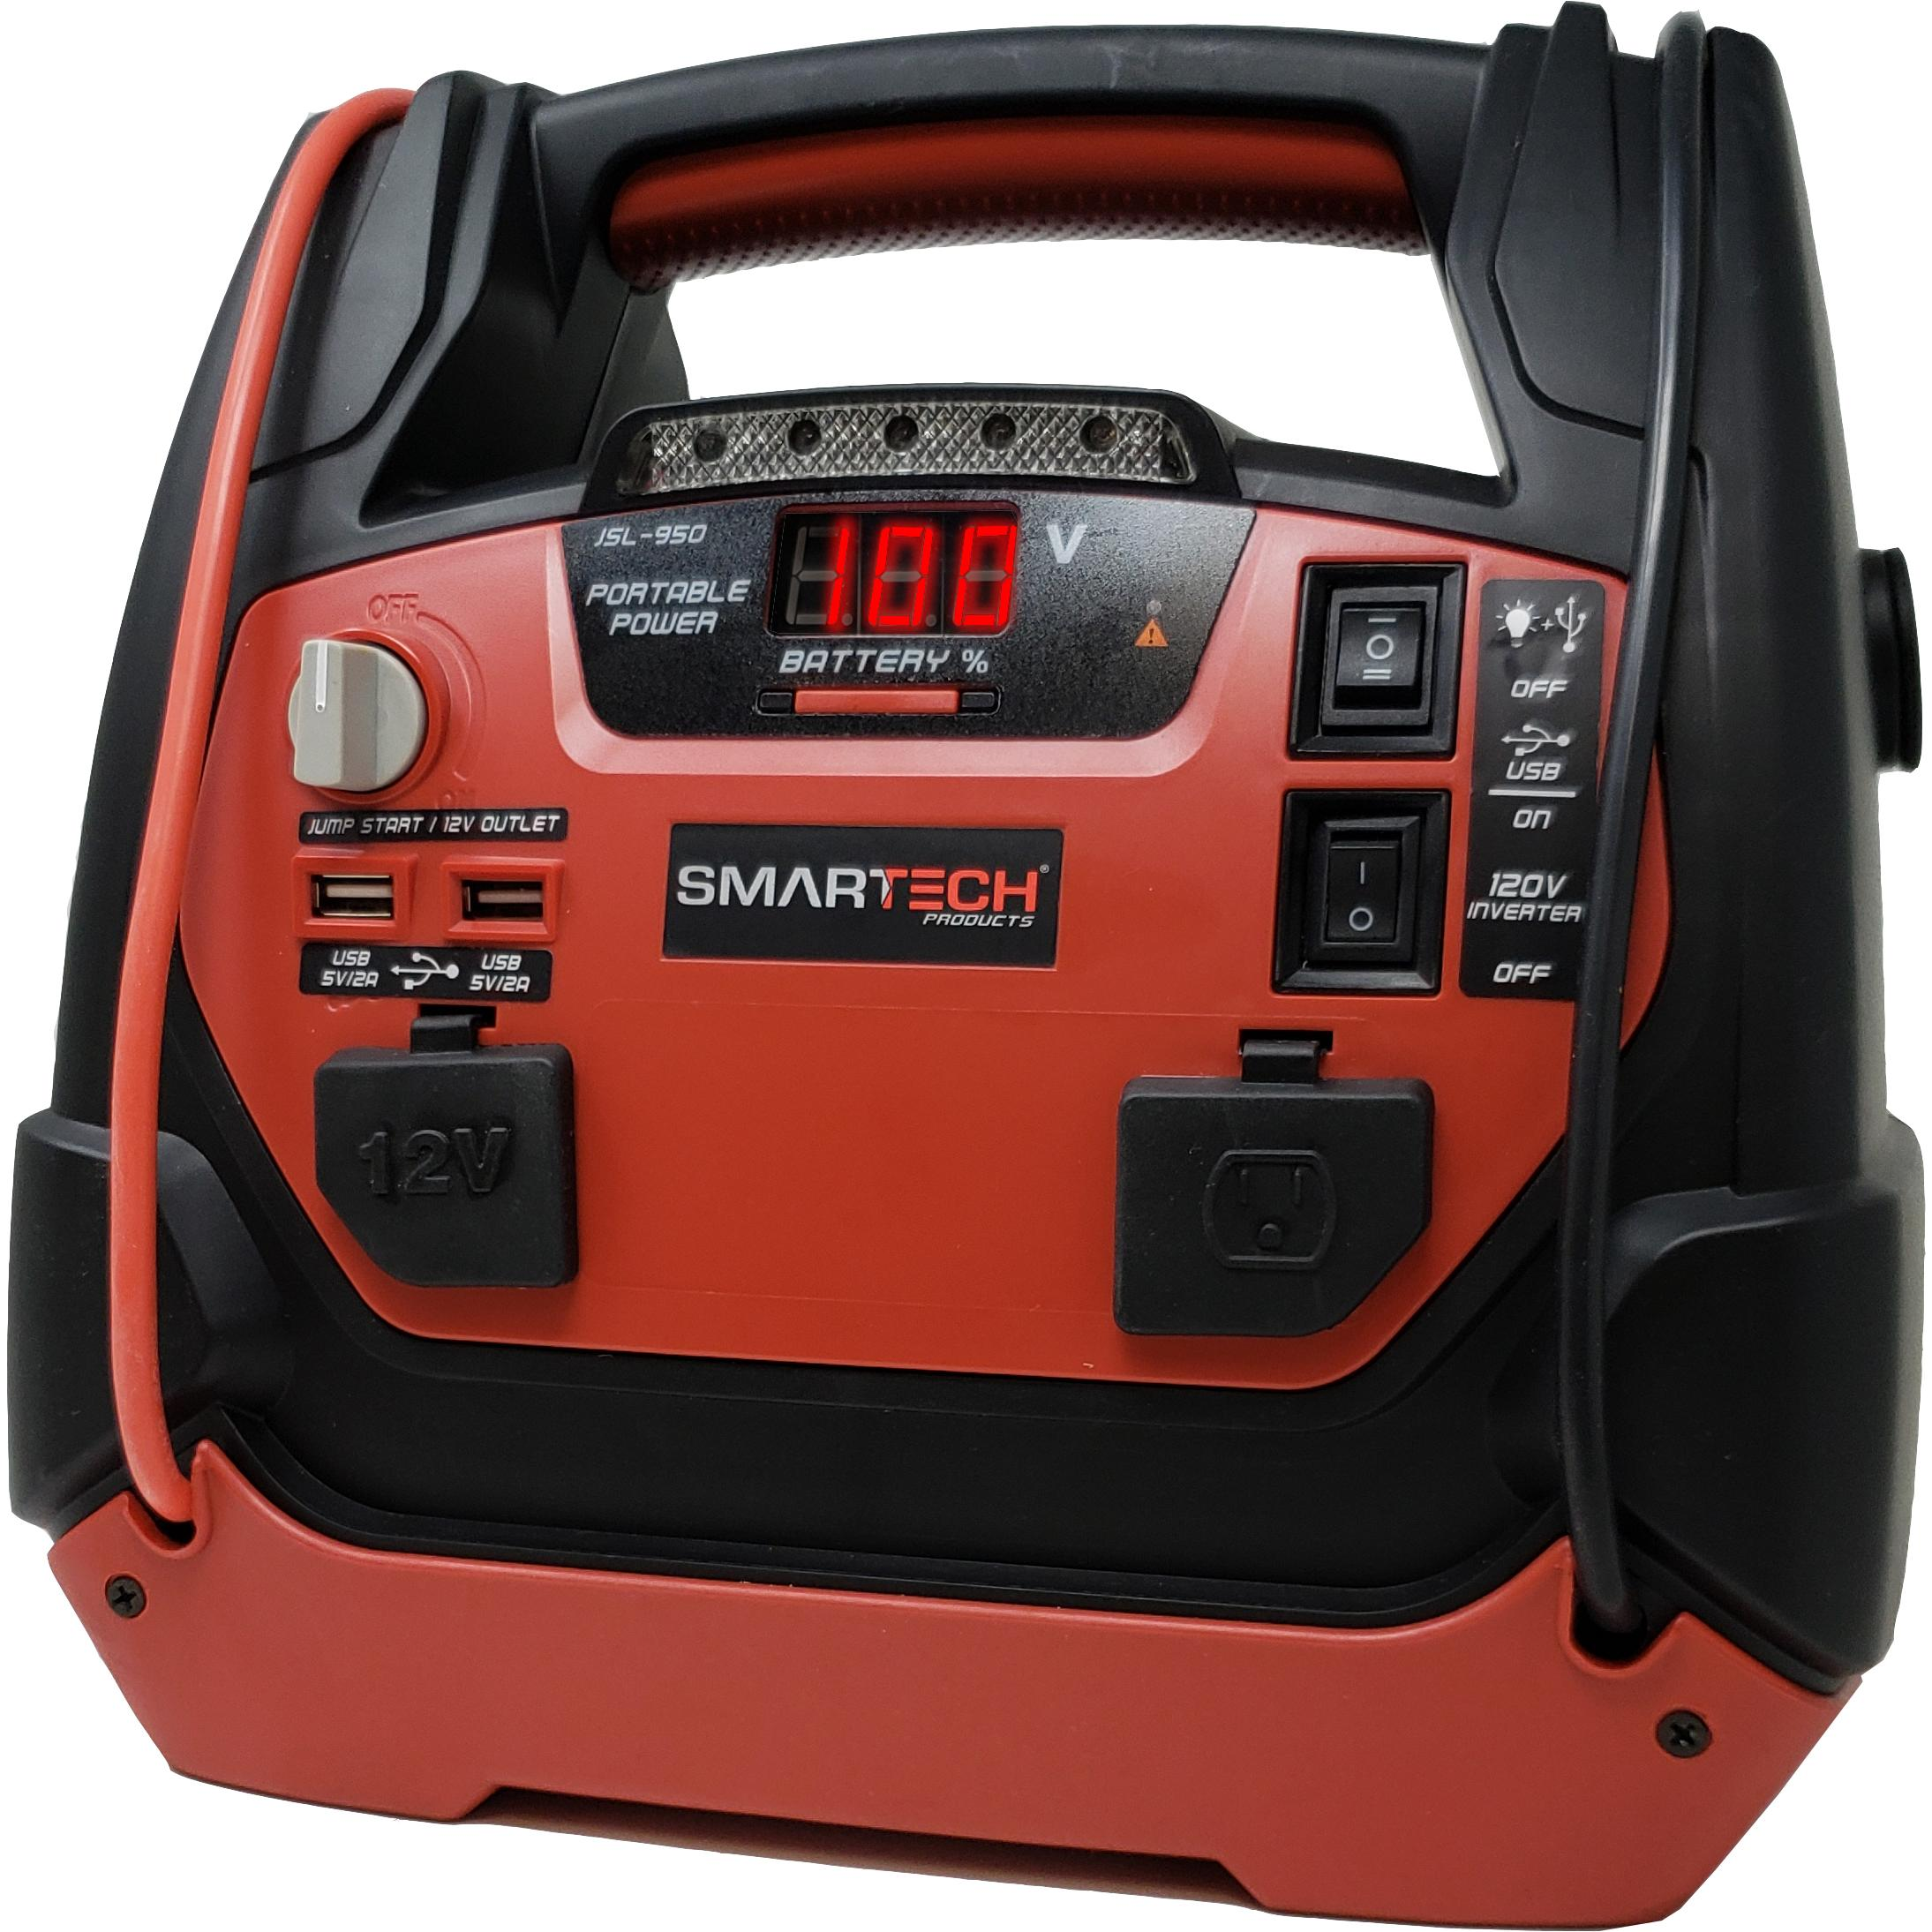 Smartech JSL-950 Power Station with Jump Starter and Air Compressor